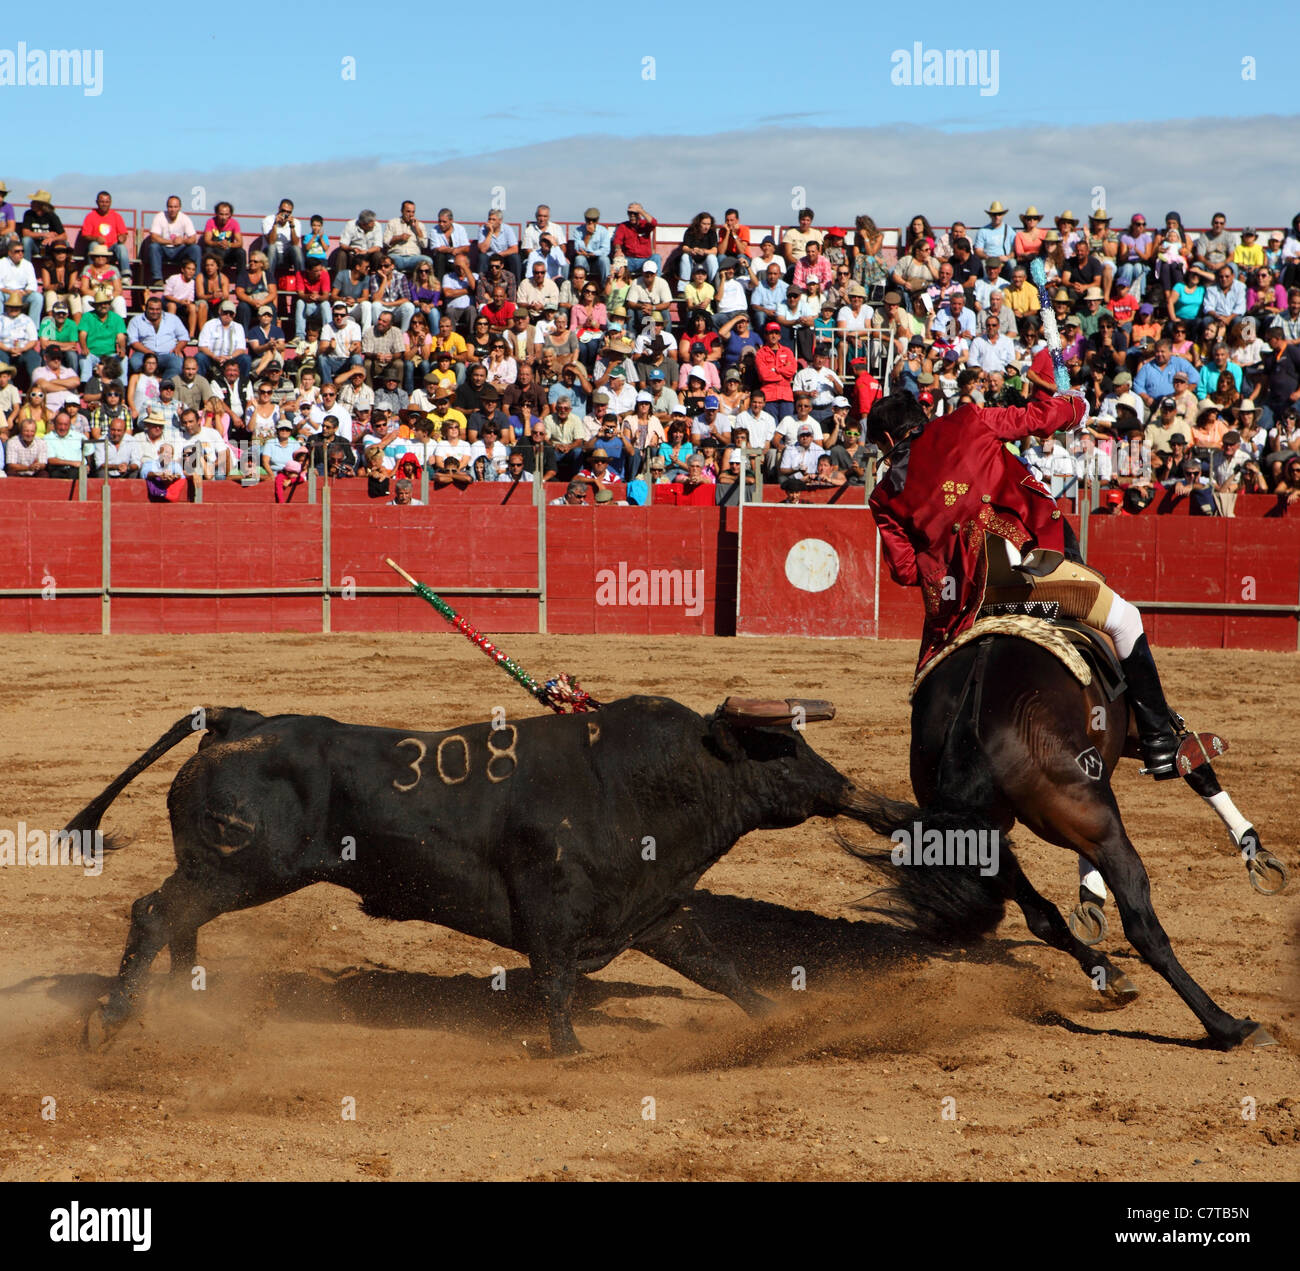 Luis Rouxinol in action during a bullfight in Mafra, District of Lisbon, Portugal. - Stock Image